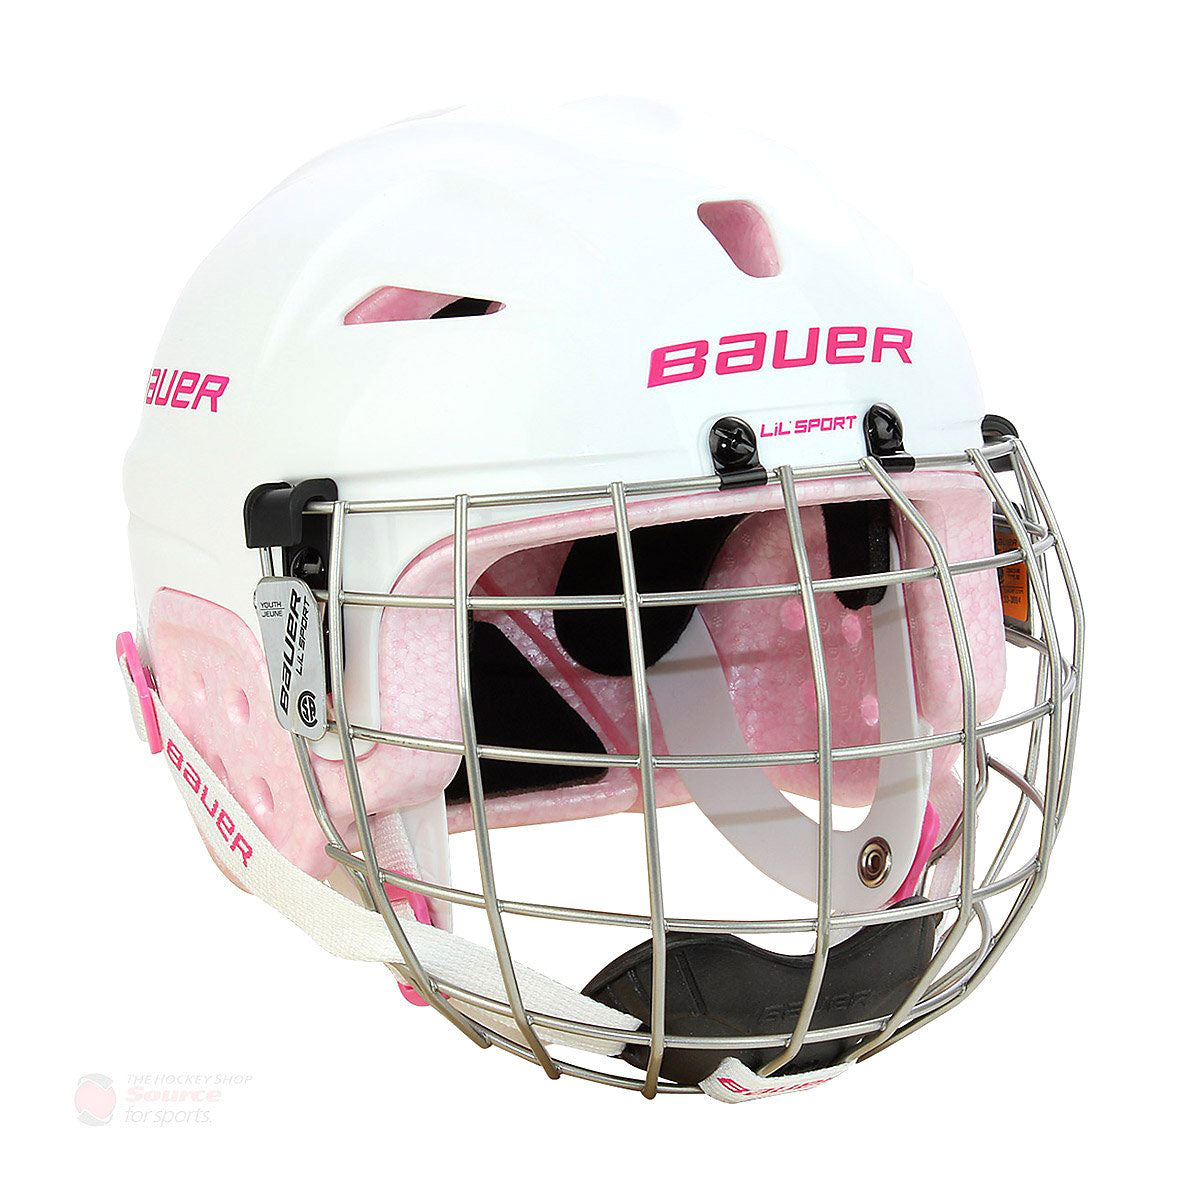 Bauer Lil Sport Hockey Helmet / Cage Combo